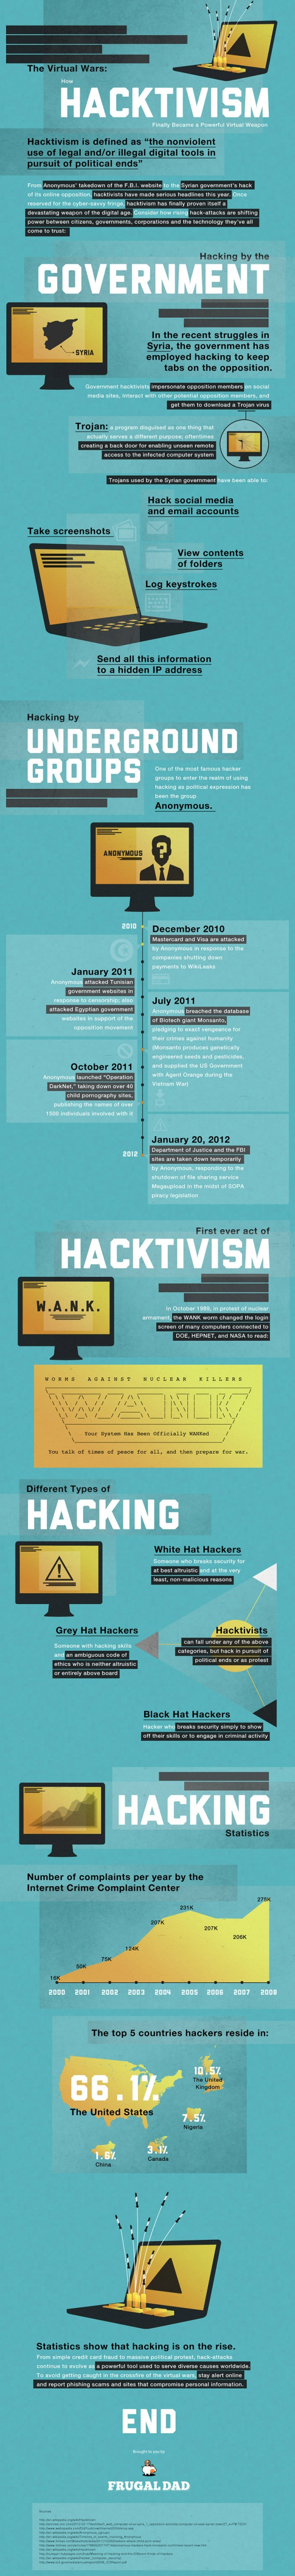 The Virtual Wars: How Hacktivism Finally Became A Powerful Virtual Weapon[INFOGRAPHIC]